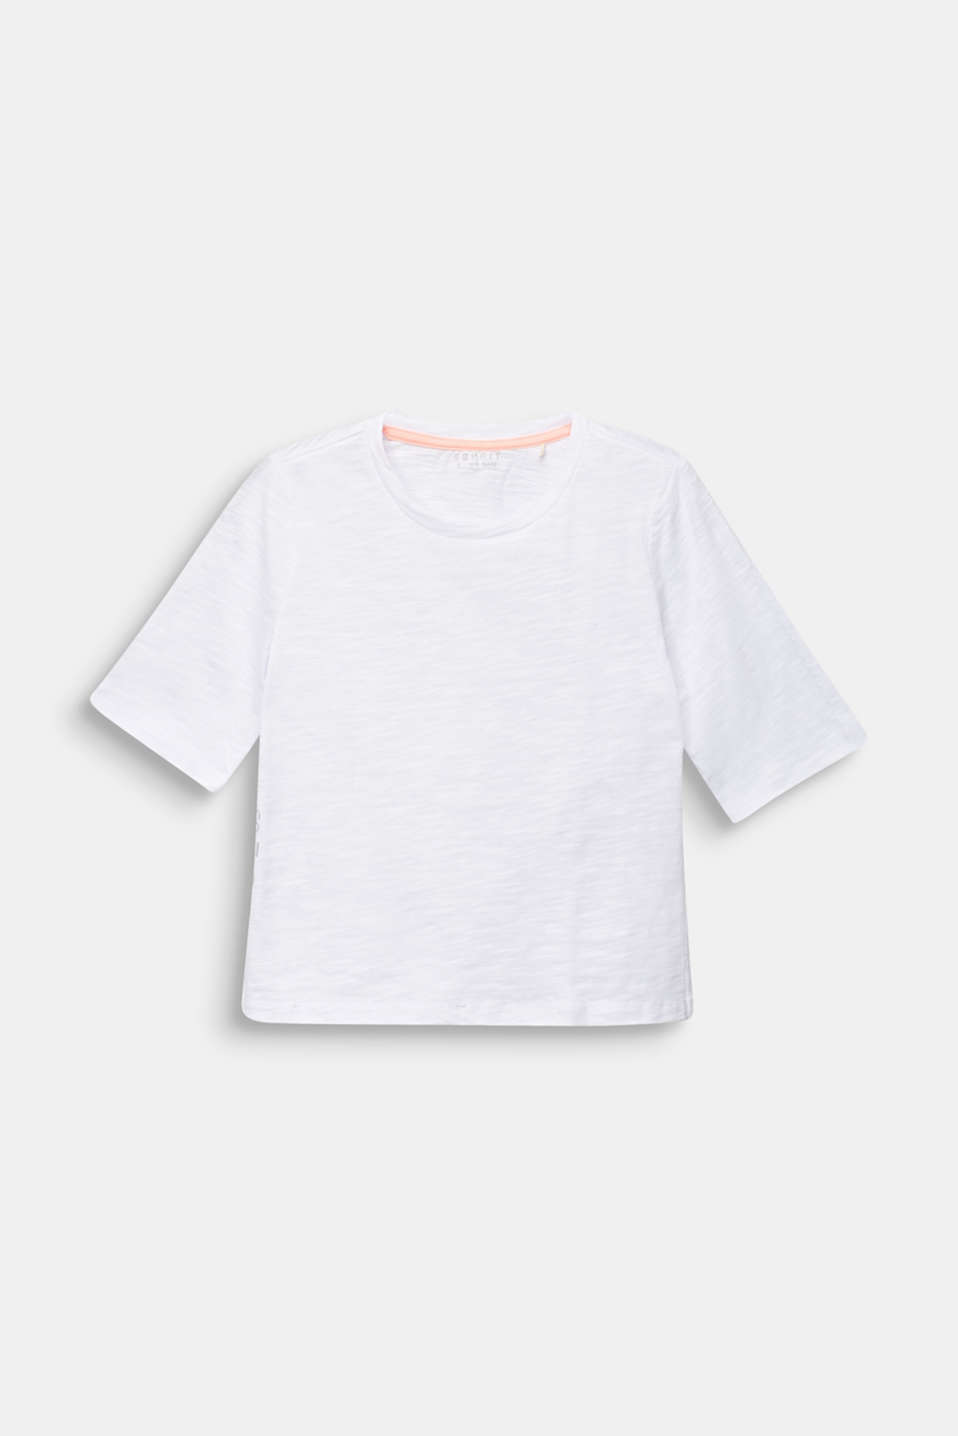 T-shirt with side slits, 100% cotton, LCWHITE, detail image number 0